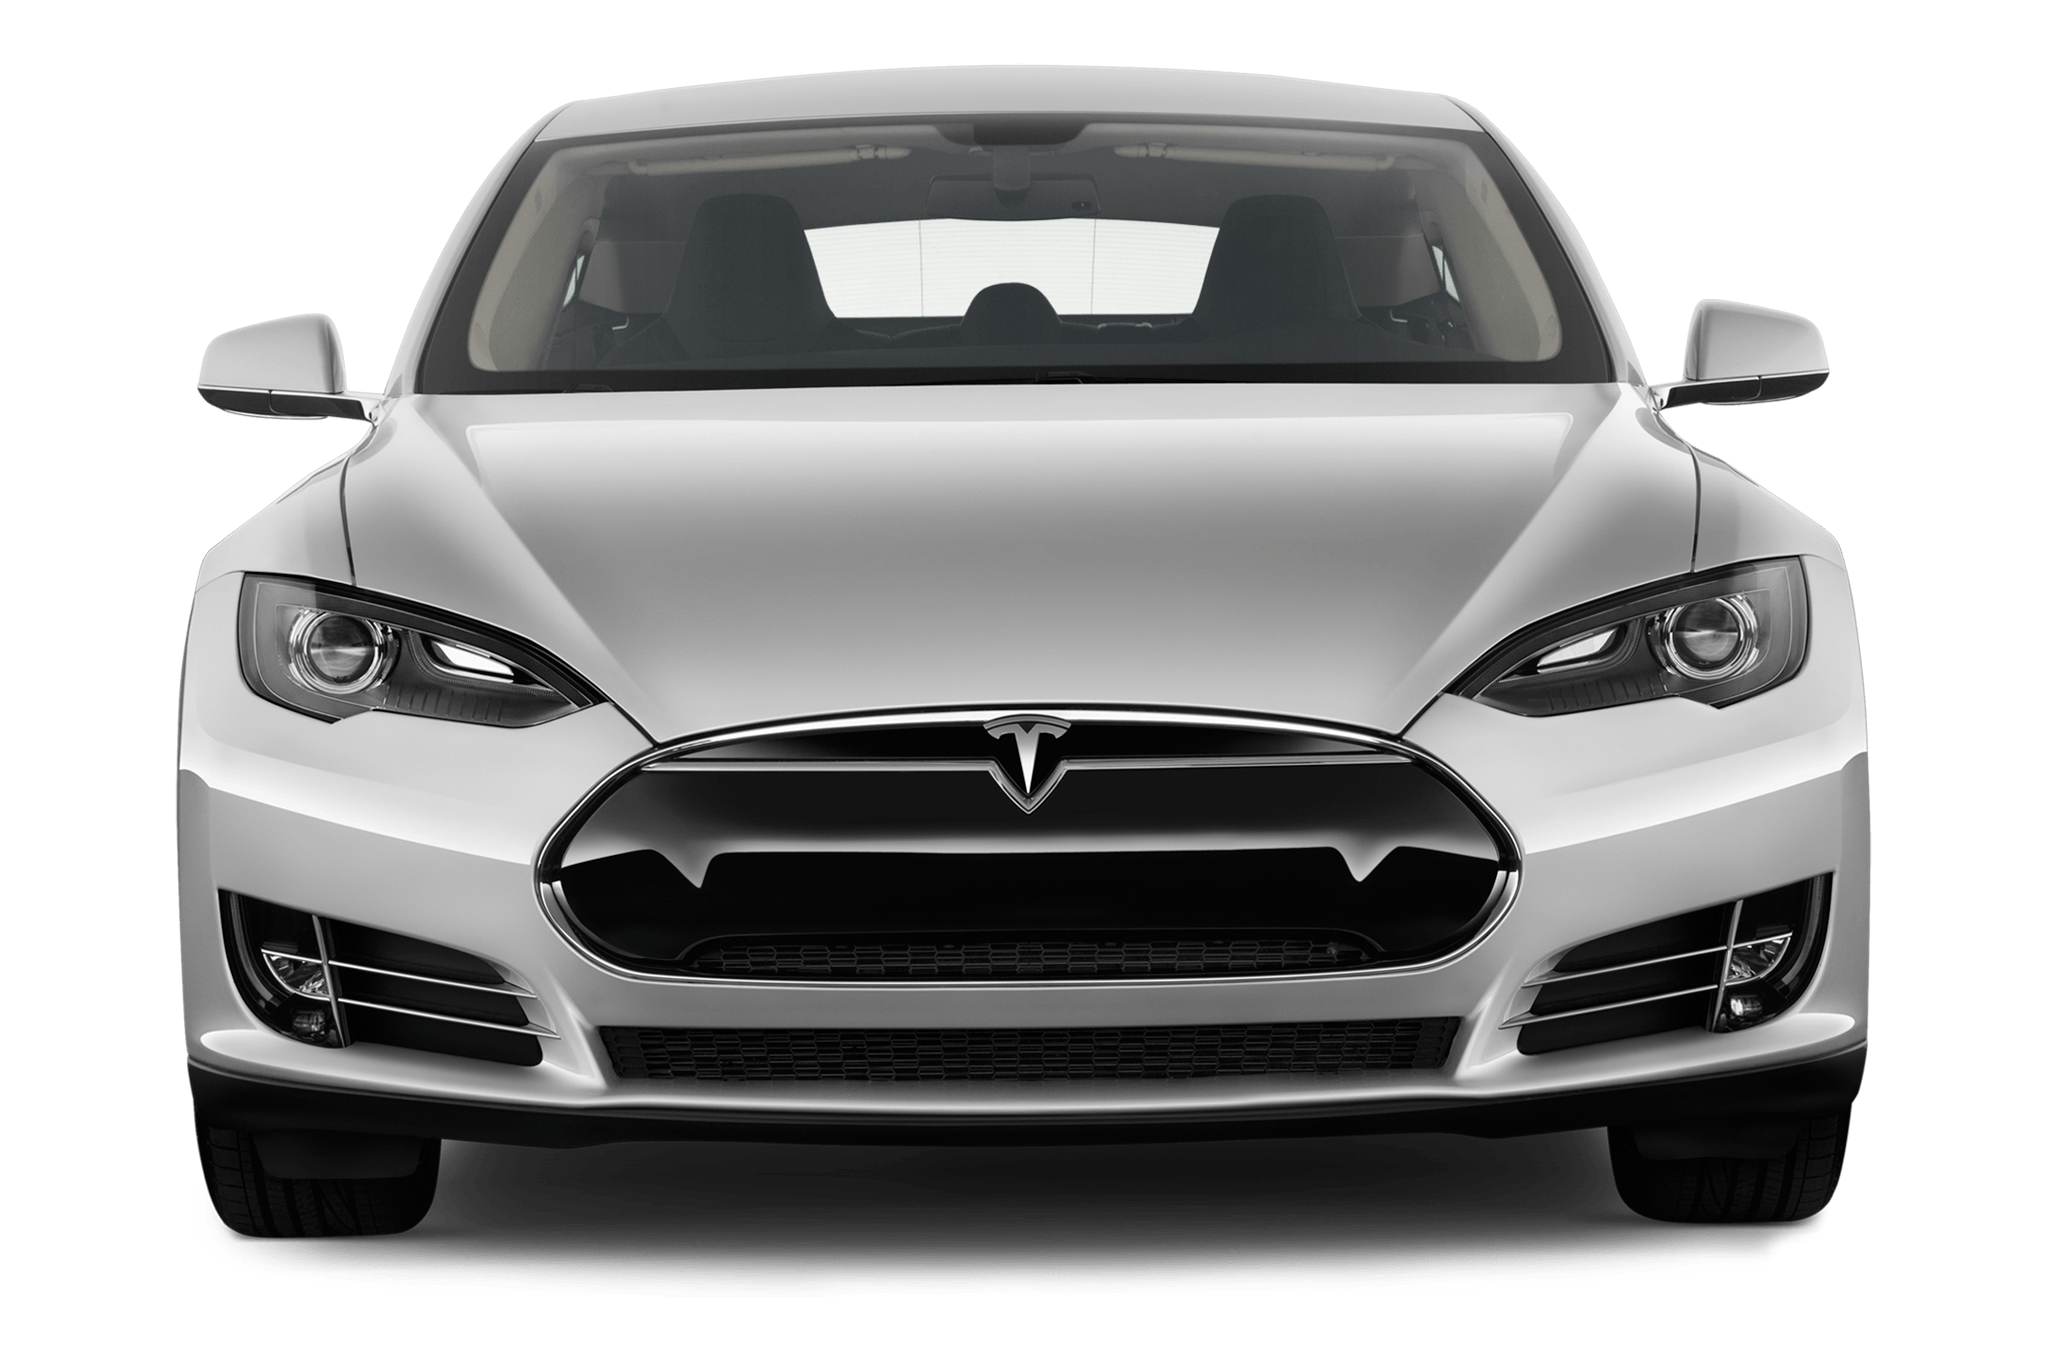 Tesla Model S Front transparent PNG.